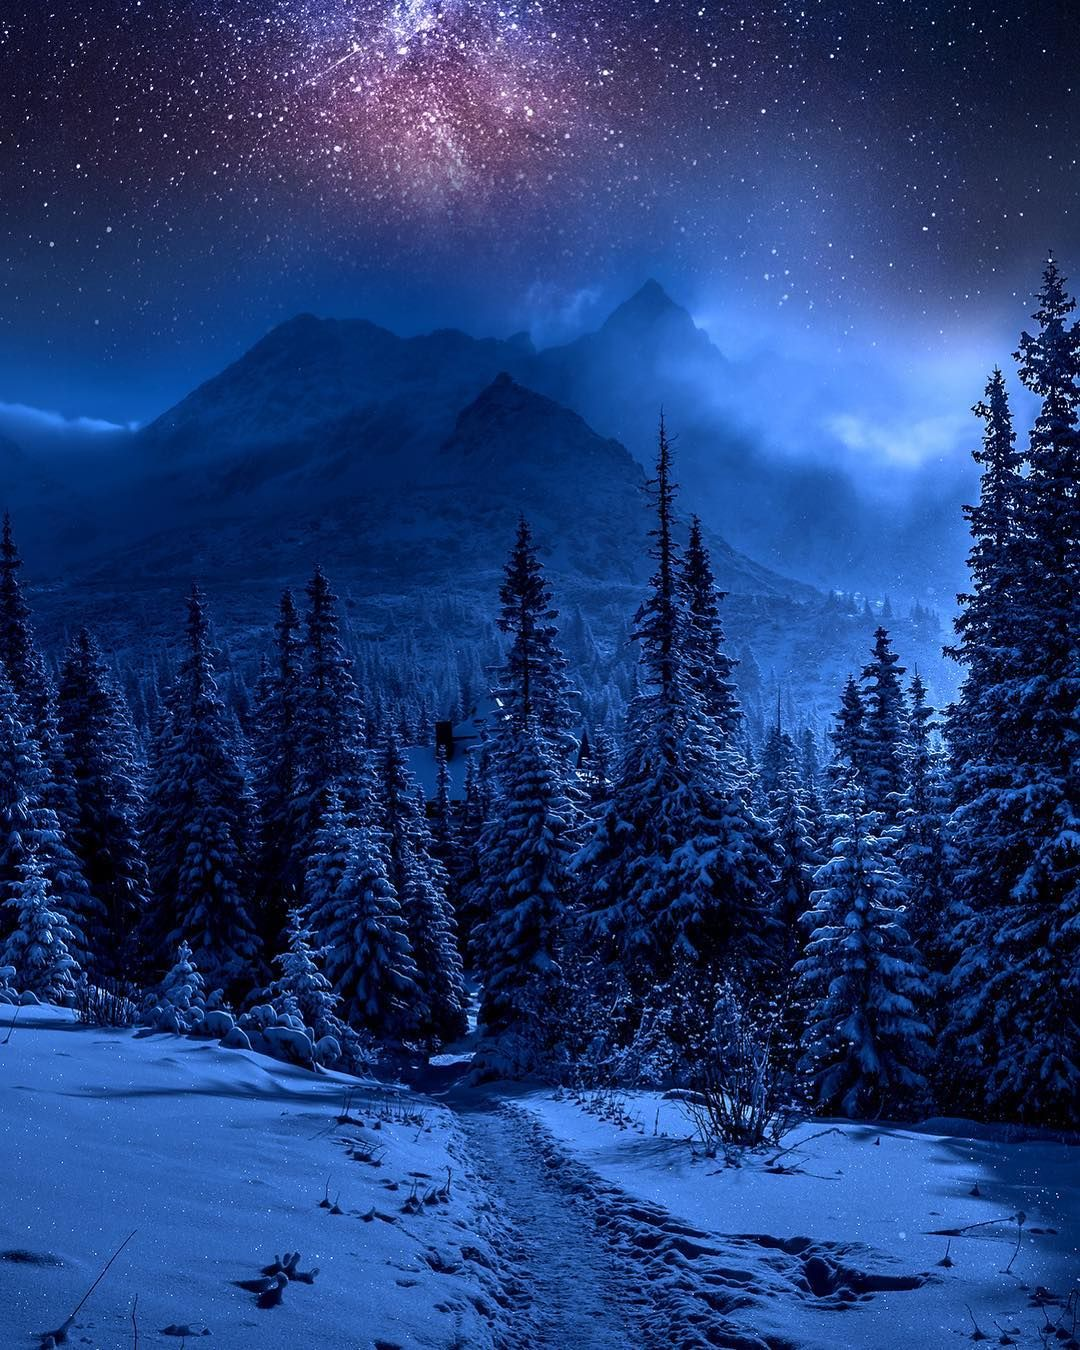 Pin By منيره المطيري On Awesome Stuff Night Sky Wallpaper Iphone Backgrounds Nature Beautiful Nature Wallpaper